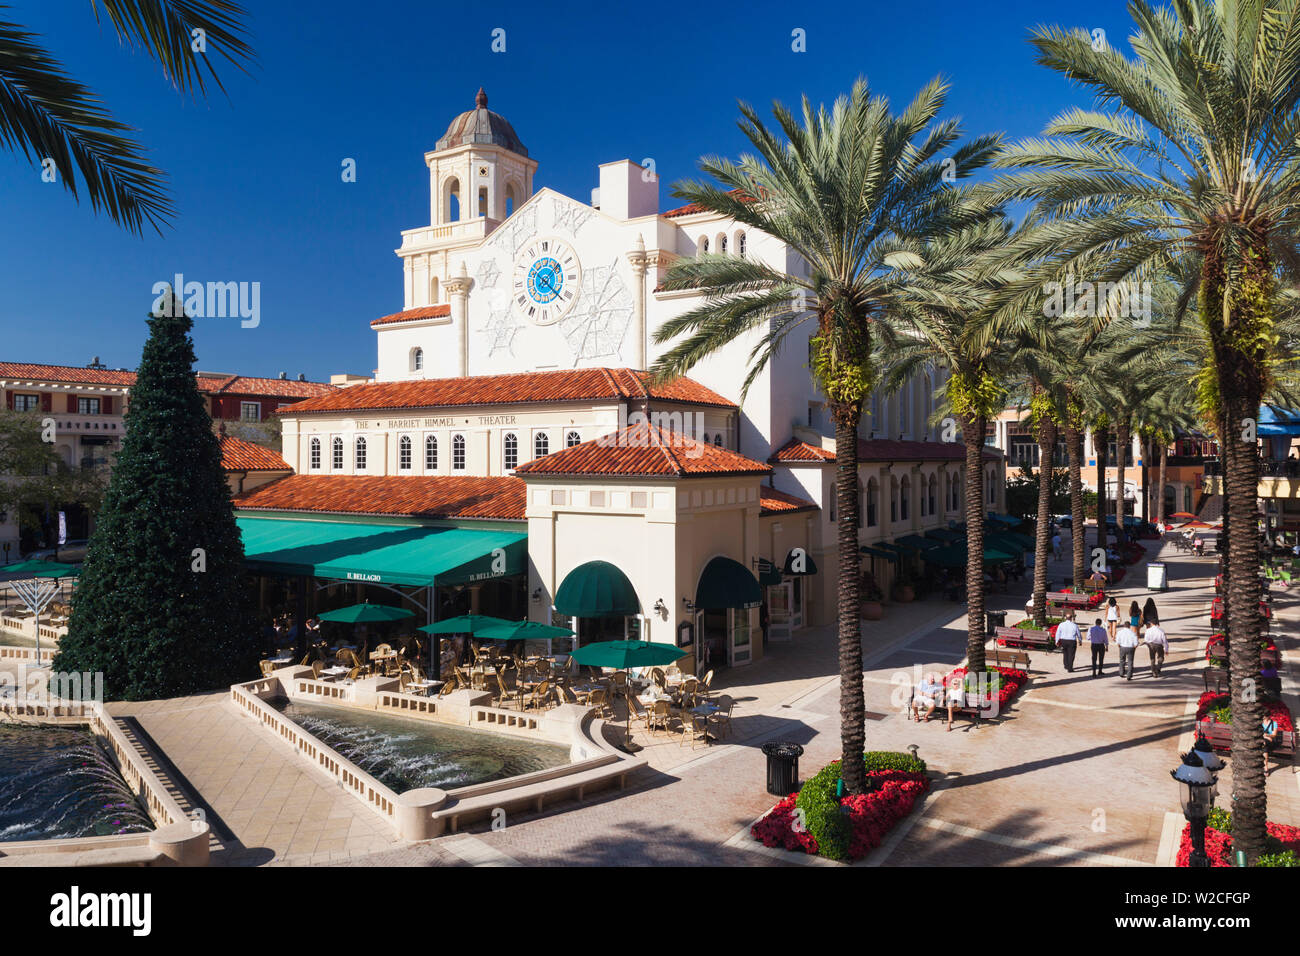 USA, Florida, West Palm Beach, City Place Mall, Harriet Himmel Theater - Stock Image